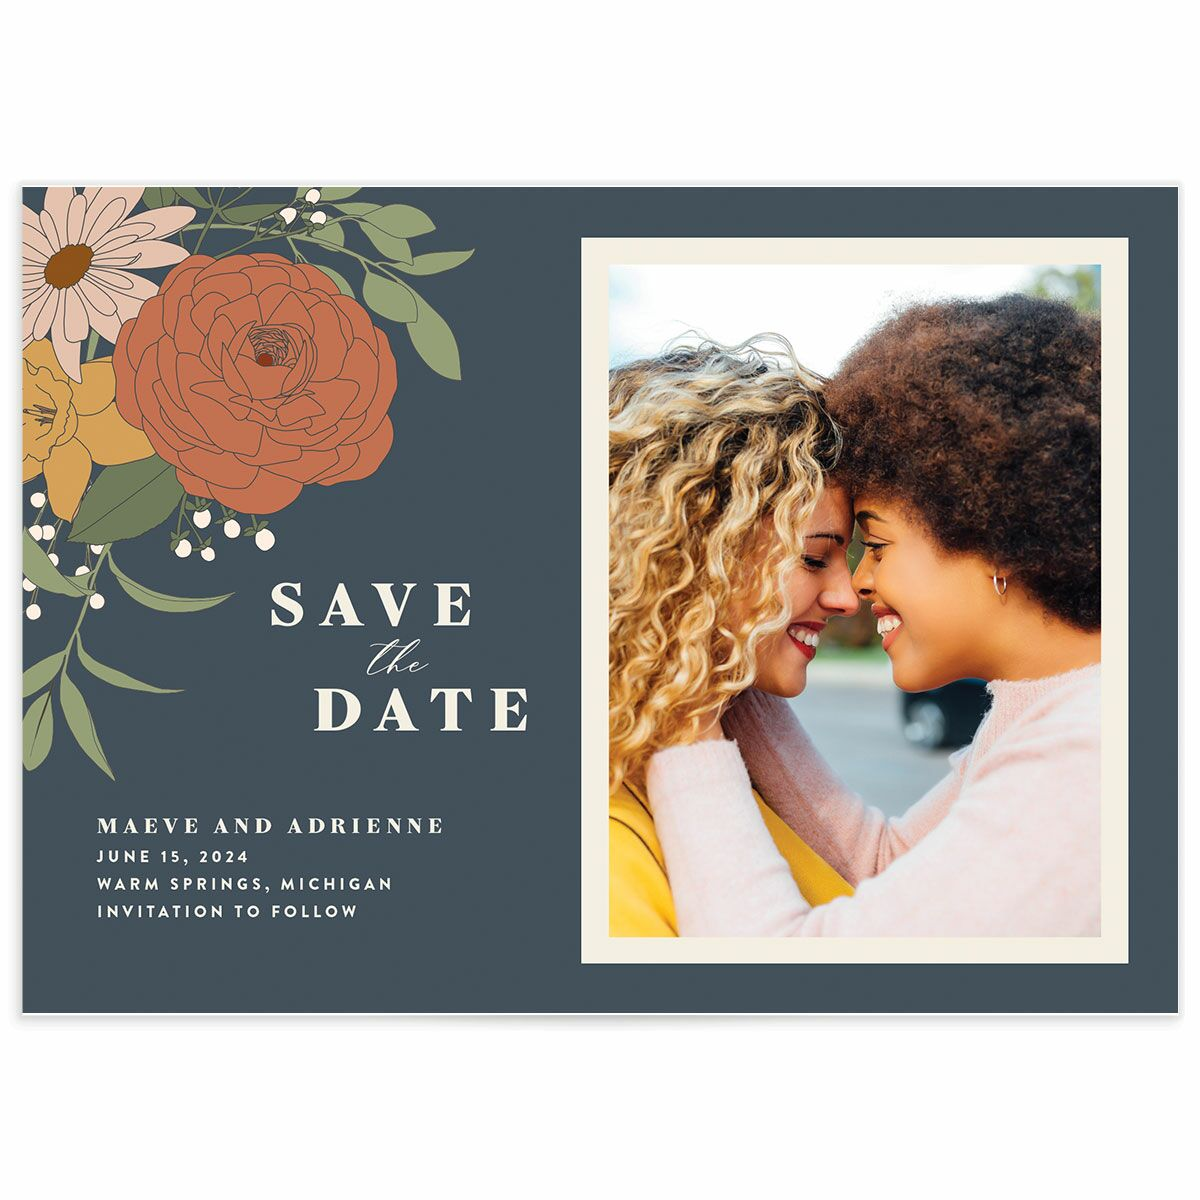 A Save the Date from the Retro Botanical Collection